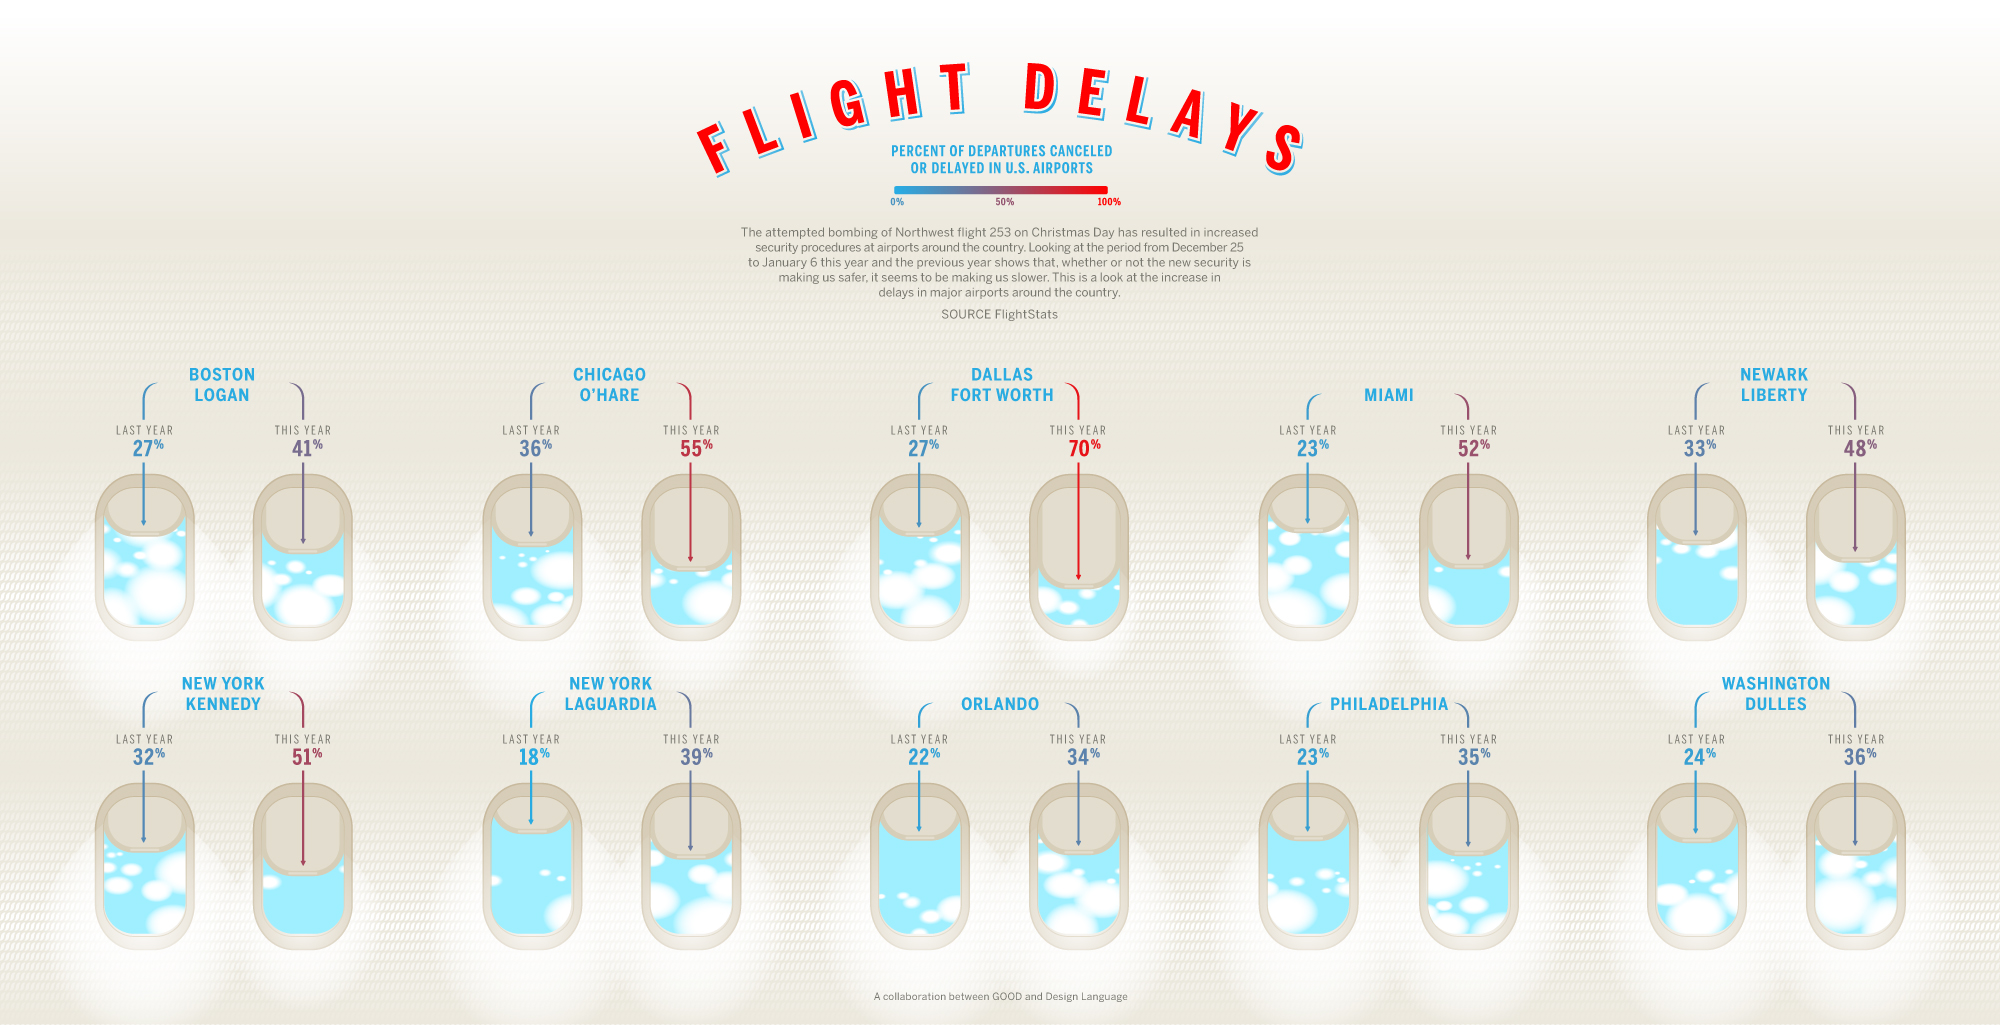 Flight delays increase across all us airports